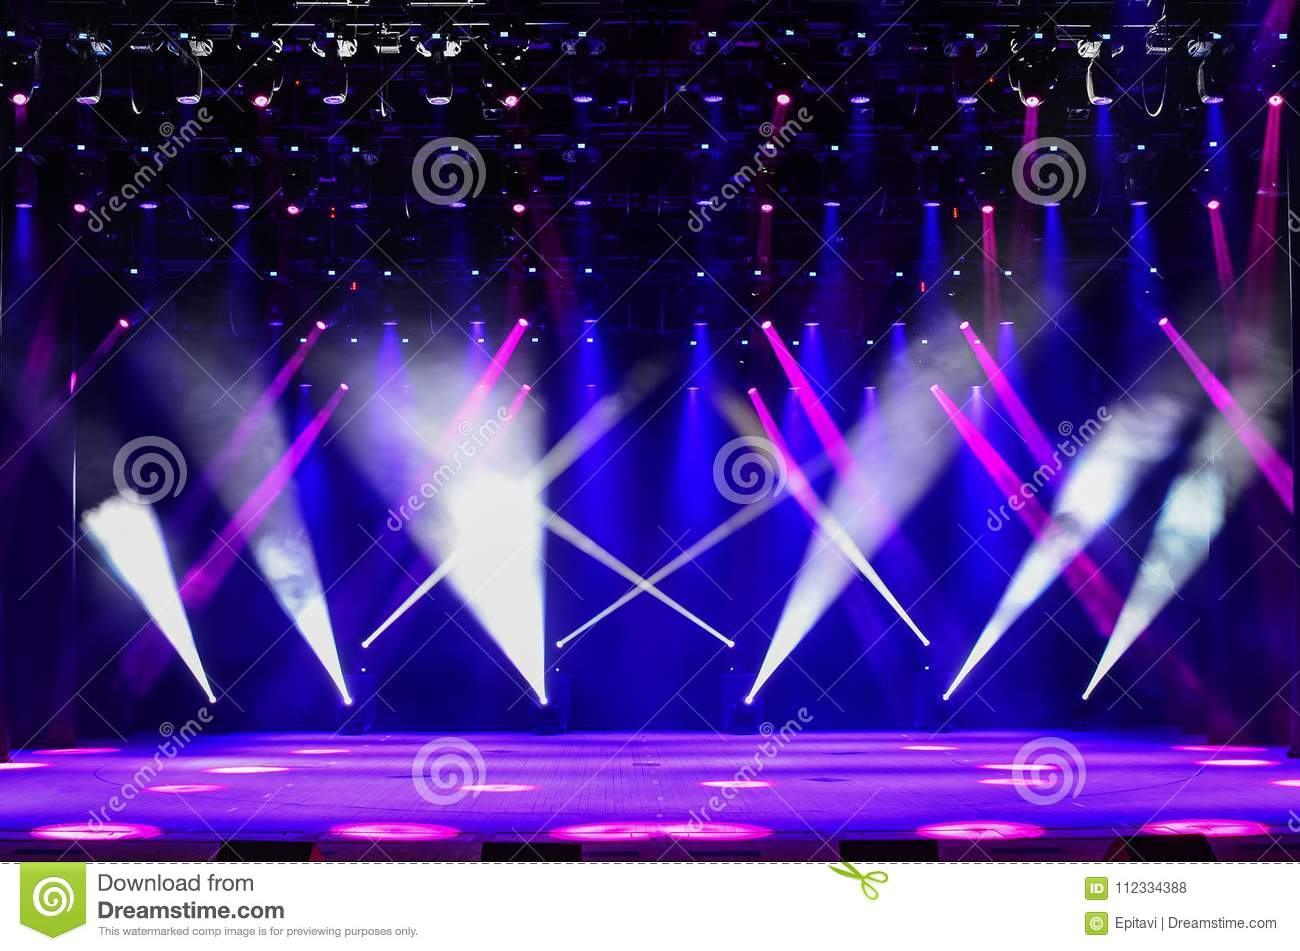 Background for music show stock photo  Image of glow - 112334388